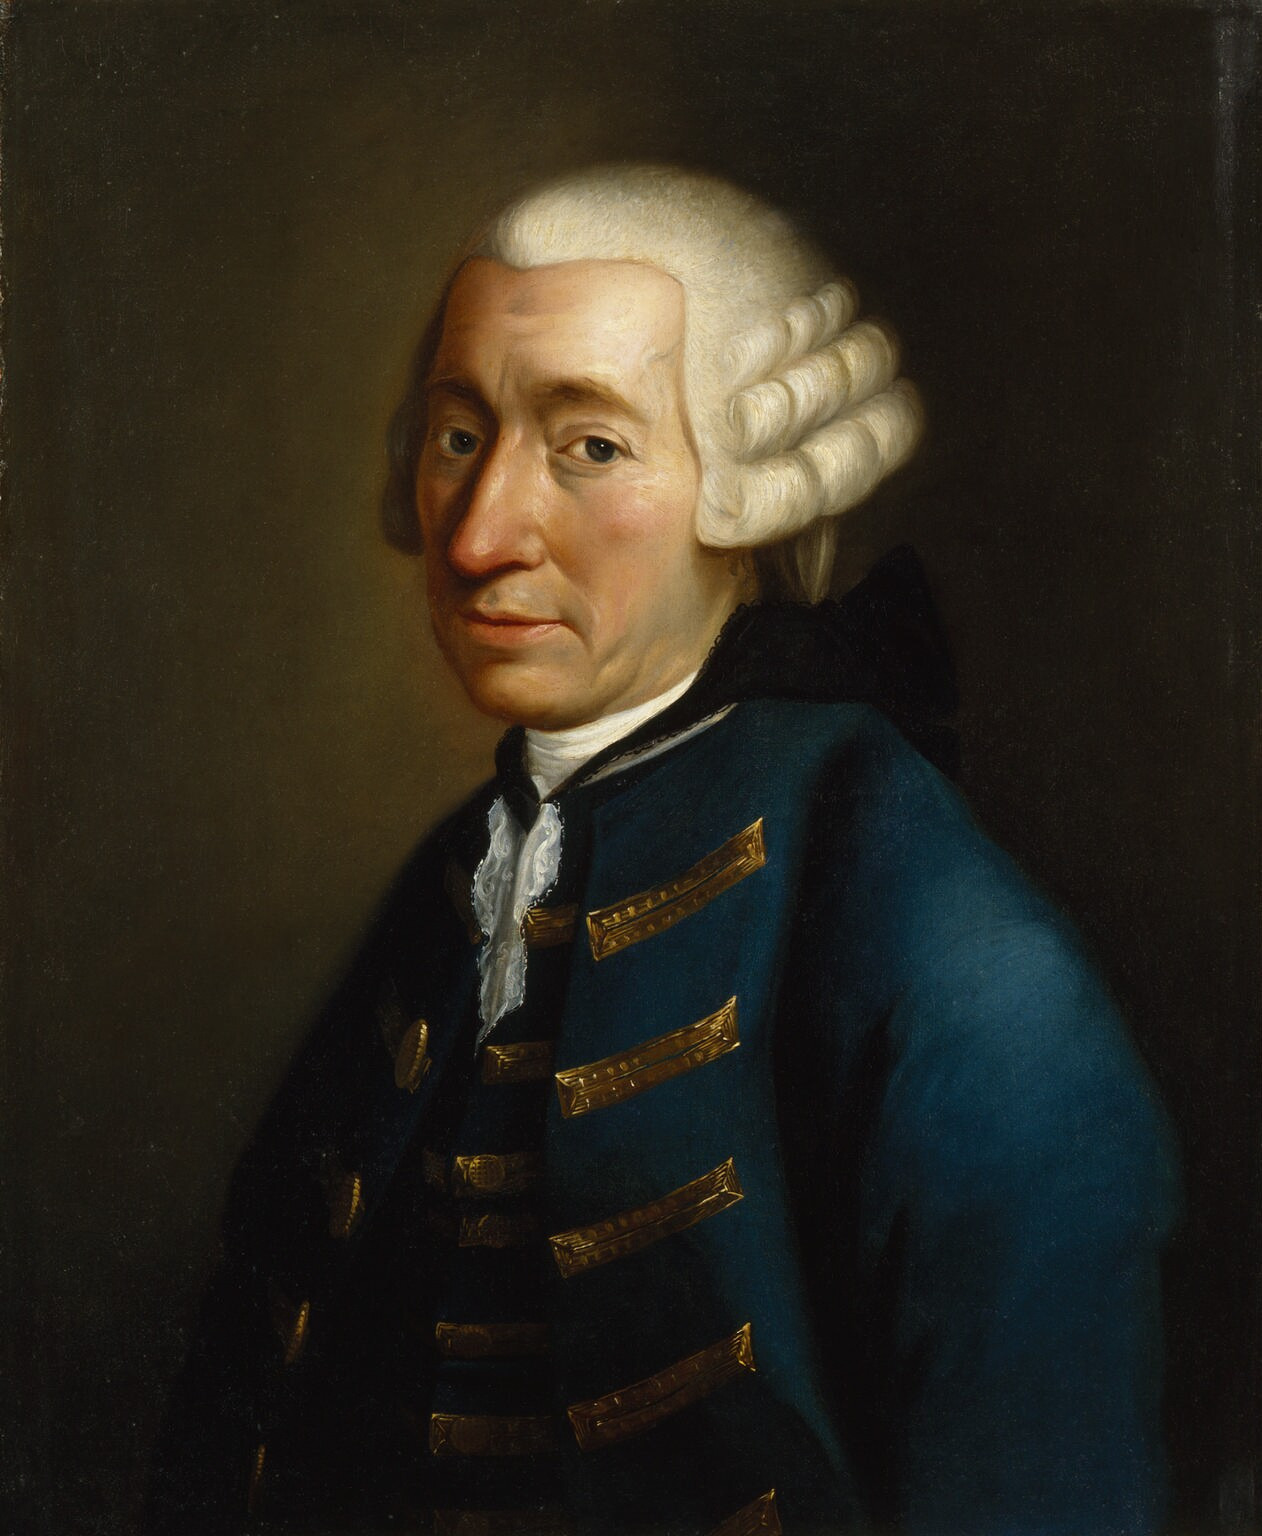 Tobias Smollet was one of a number of literary...